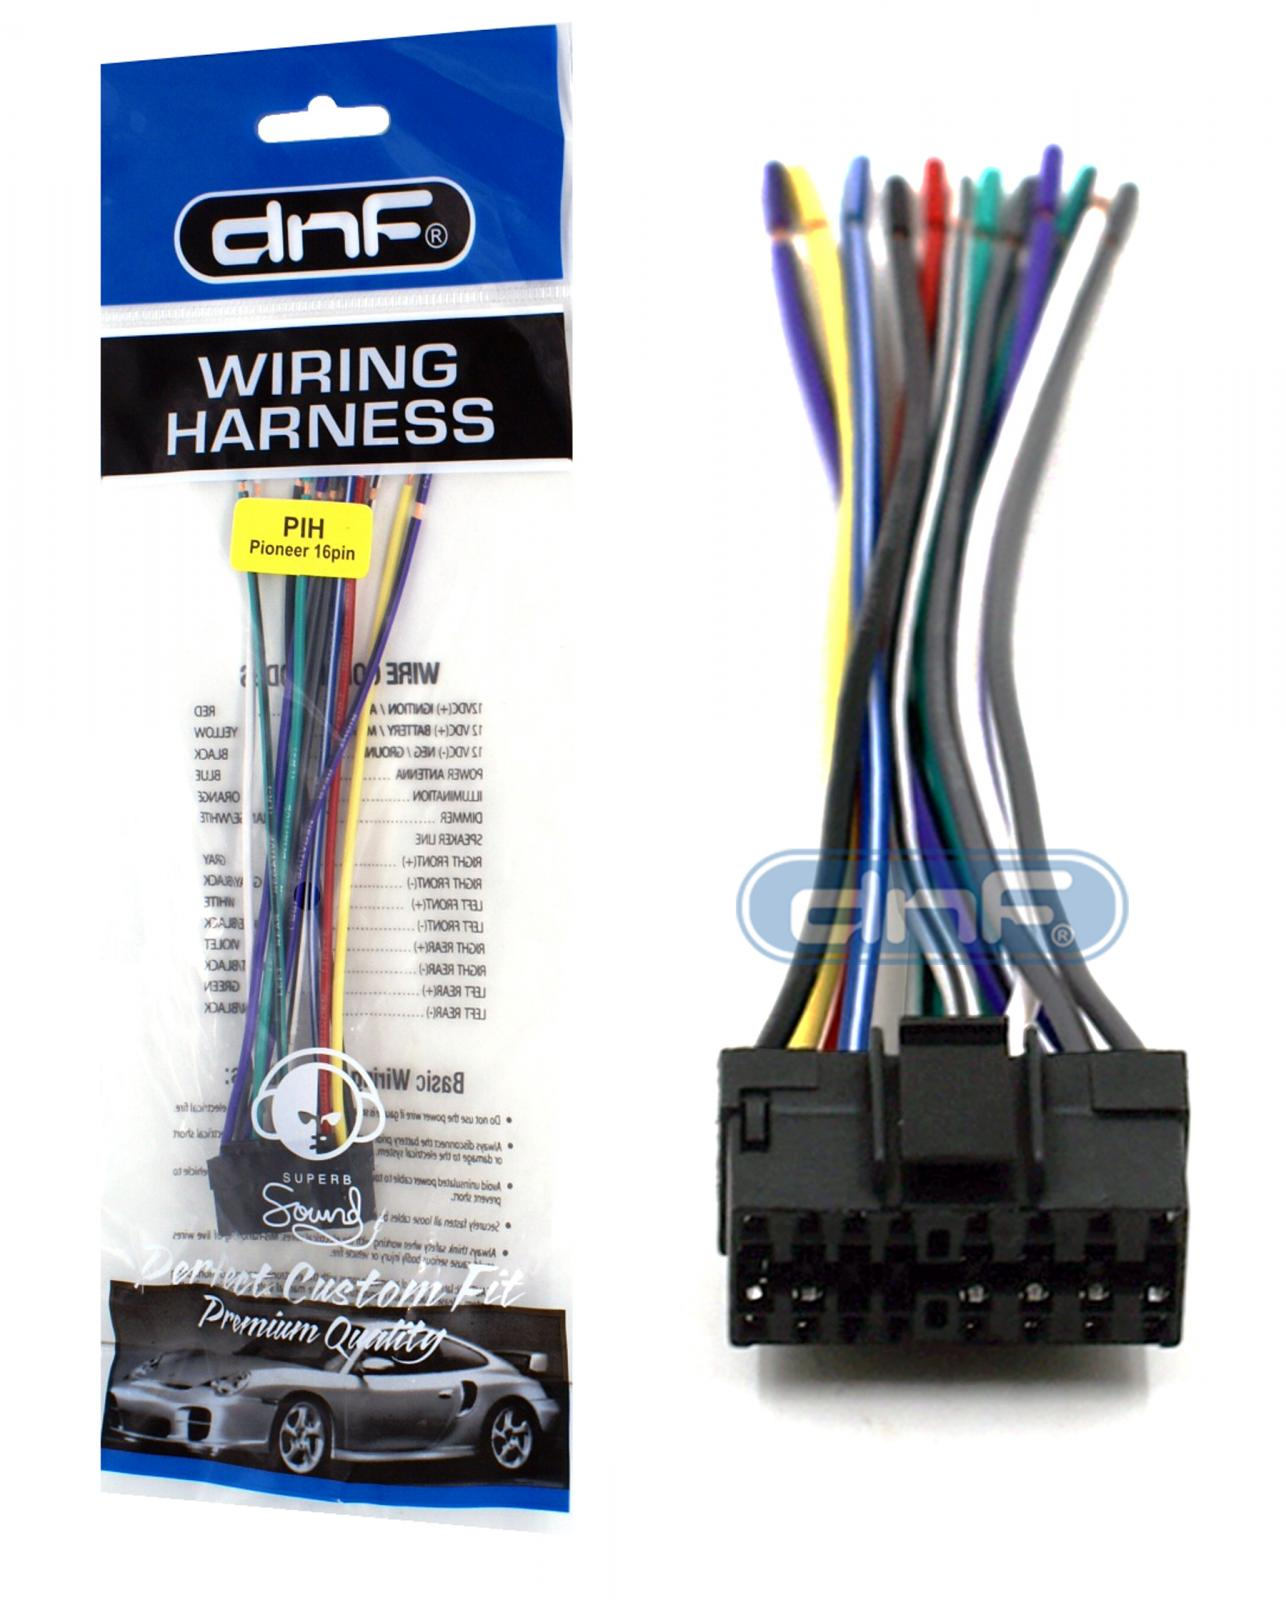 Pioneer Deh 2400ub Wiring Diagram 1300mp 140ub 14ub Wire Harness 1100 1150 2100 2150 Shipspioneer